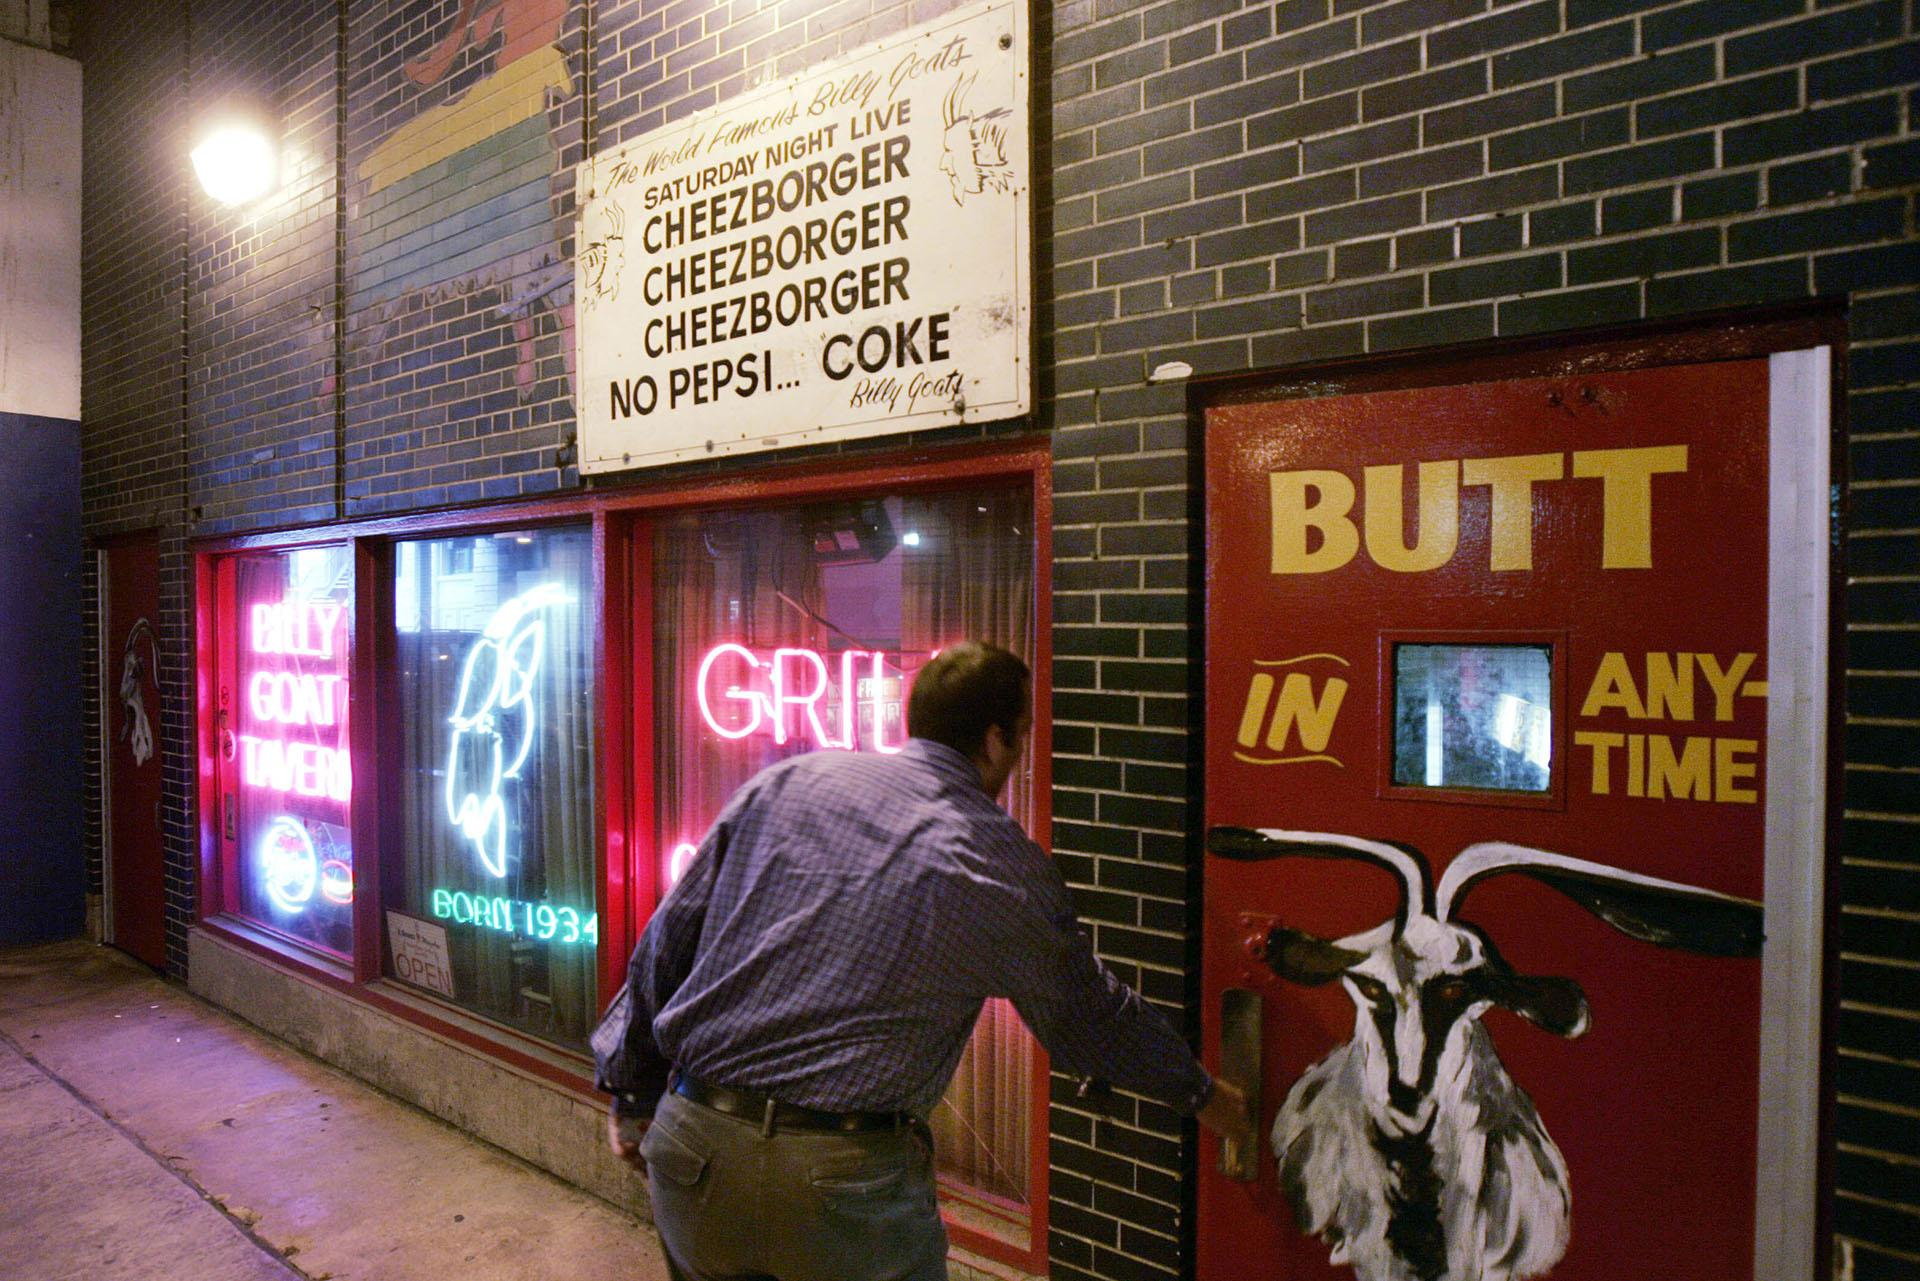 In this Sept. 23, 2005 file photo, a customer enters the Billy Goat Tavern under Chicago's Michigan Avenue. (AP Photo / Charles Rex Arbogast, File)